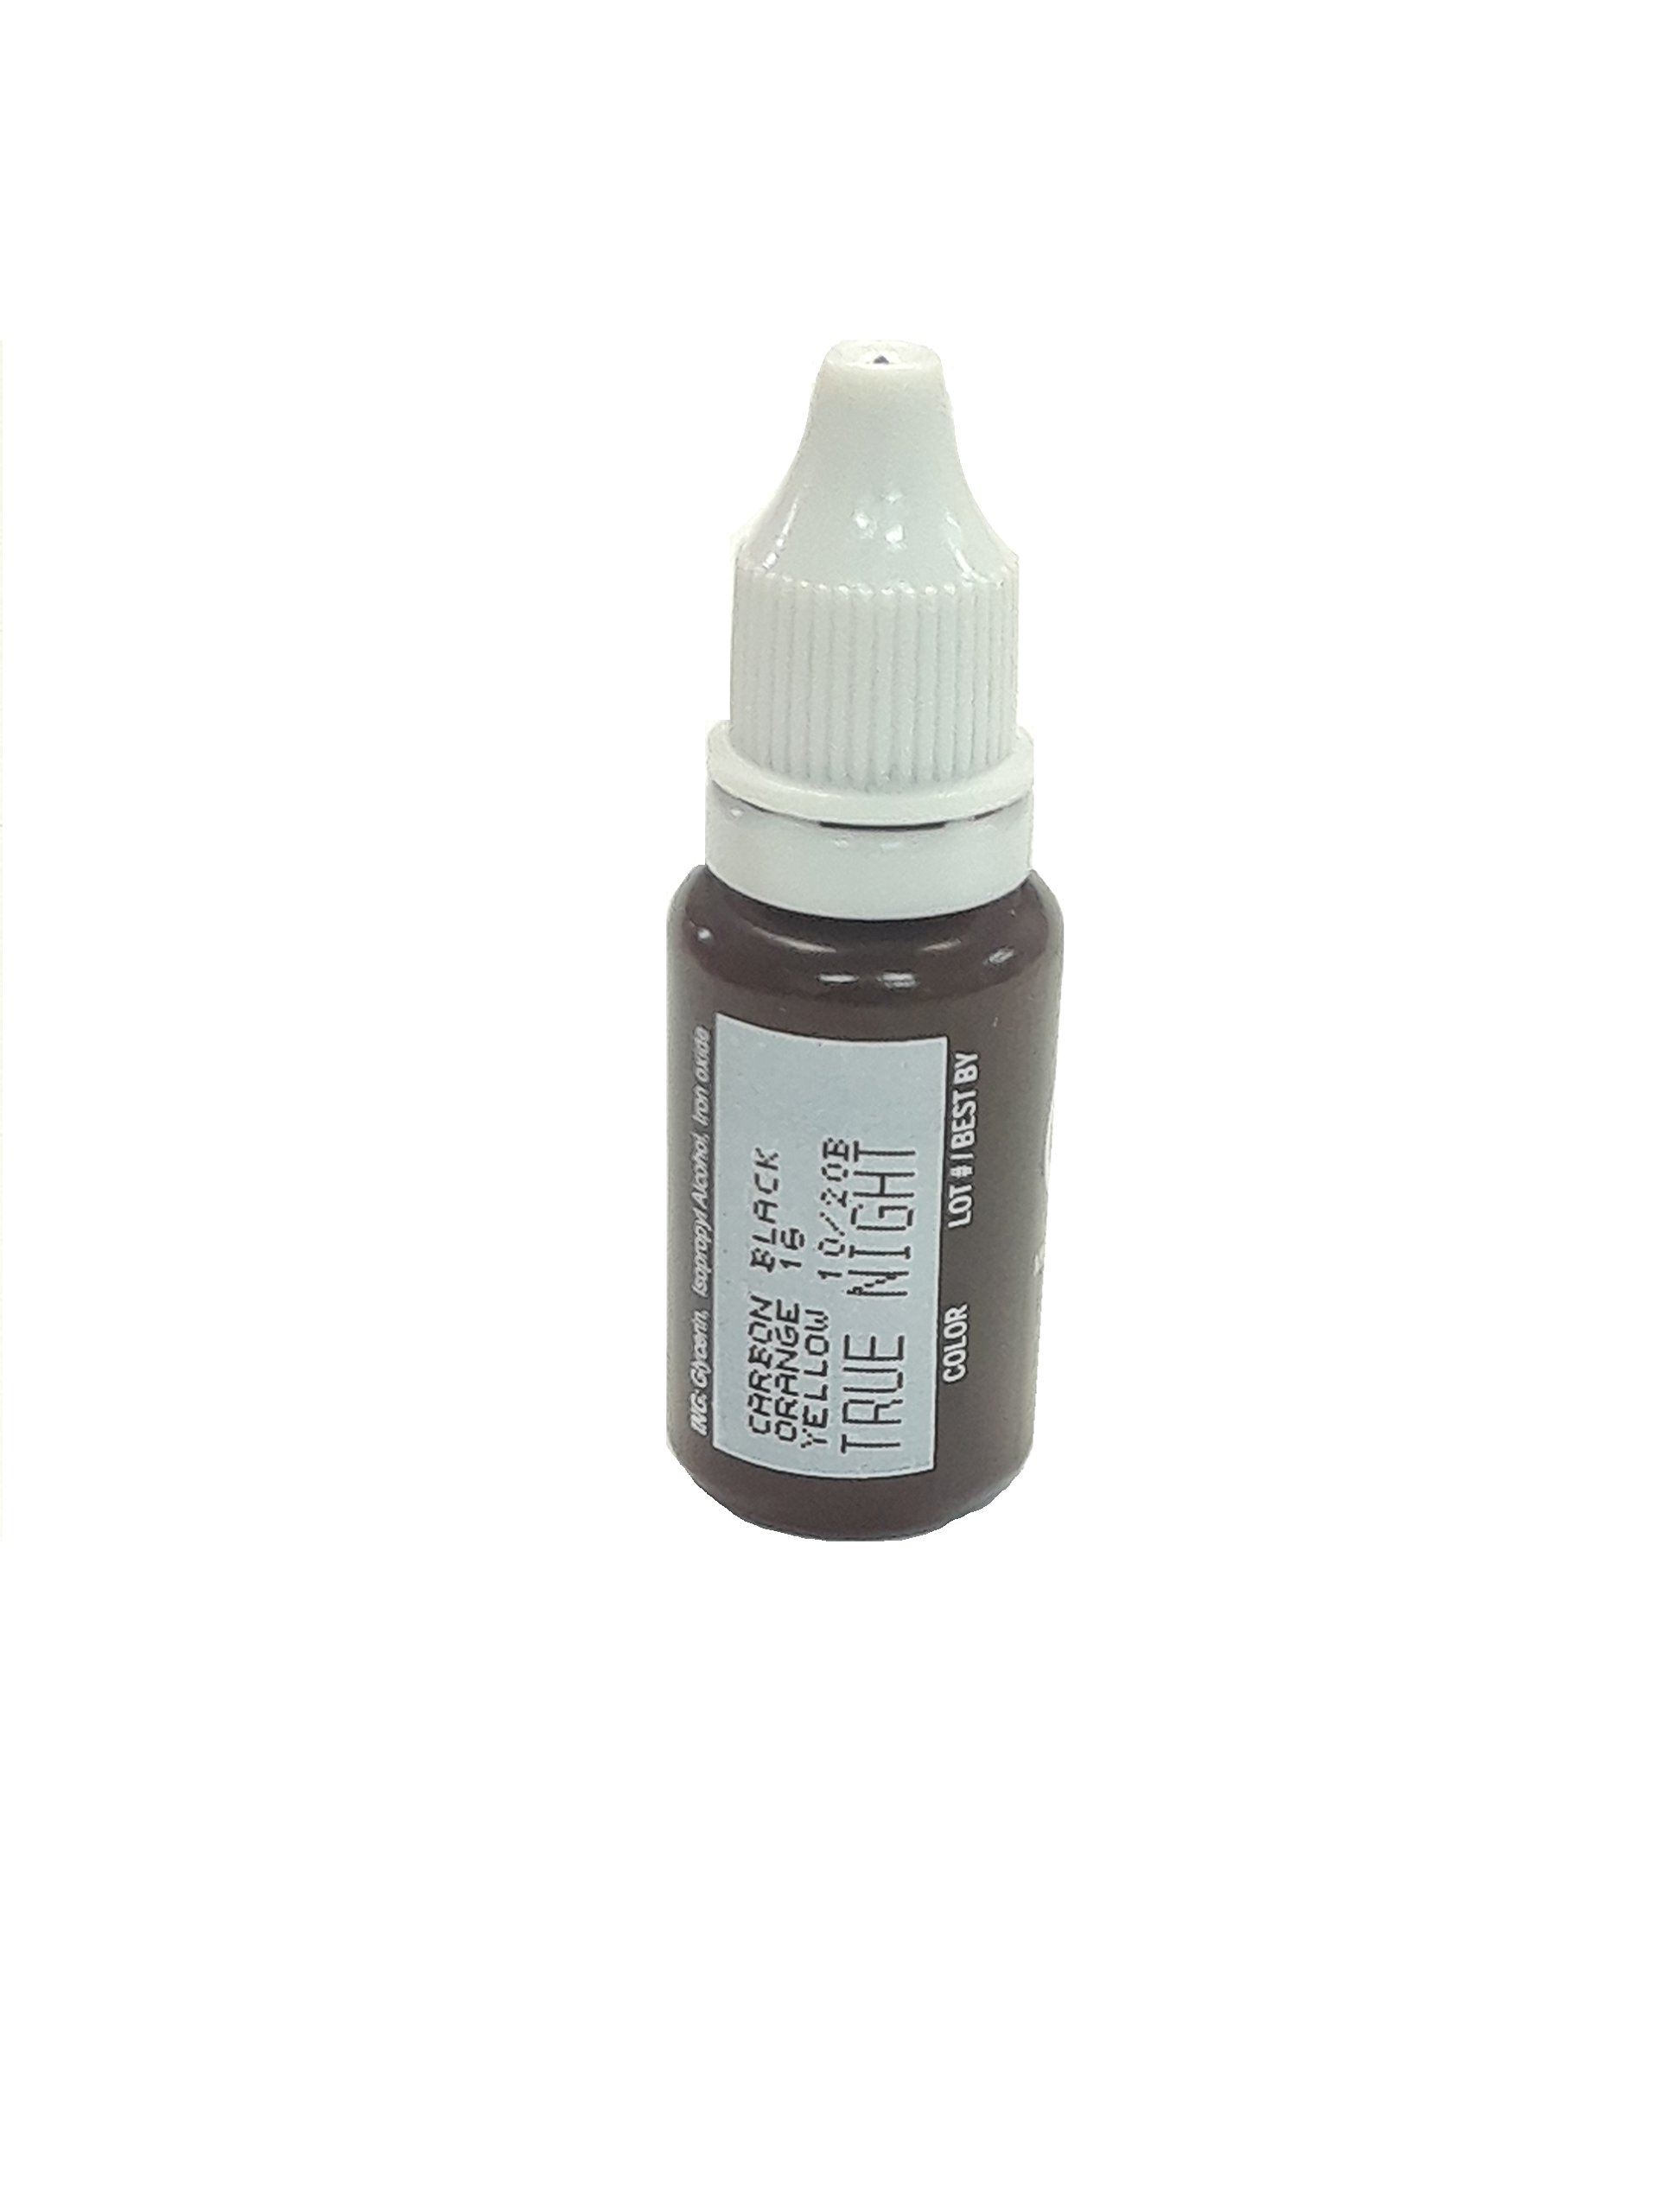 MICROBLADING supplies BioTouch True Night Microblading pigment 15ml Permanent Makeup Cosmetic Tattoo ink 1 bottle